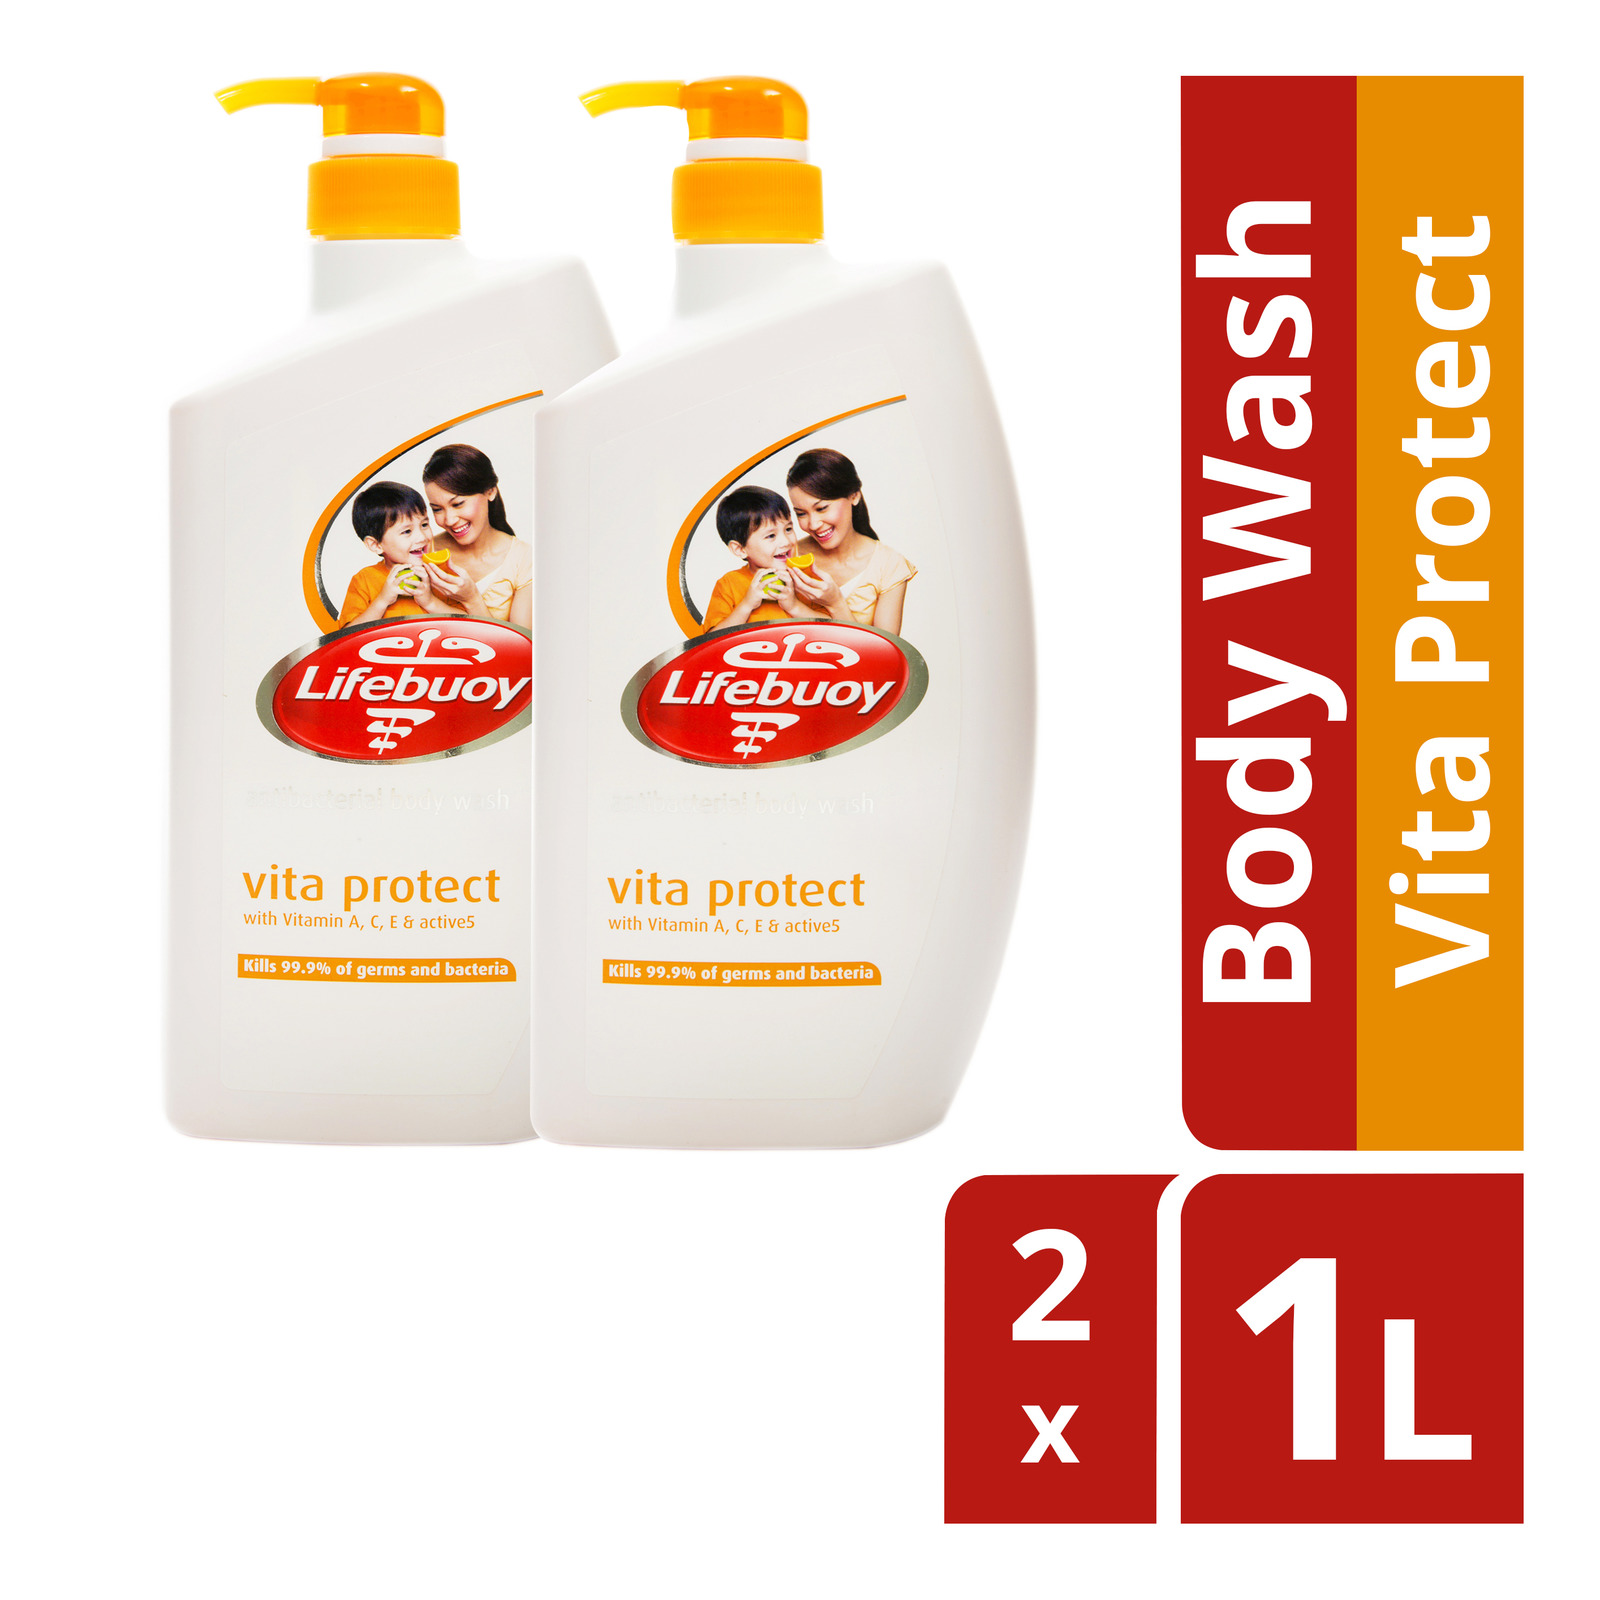 Lifebuoy Antibacterial Body Wash - Vita Protect